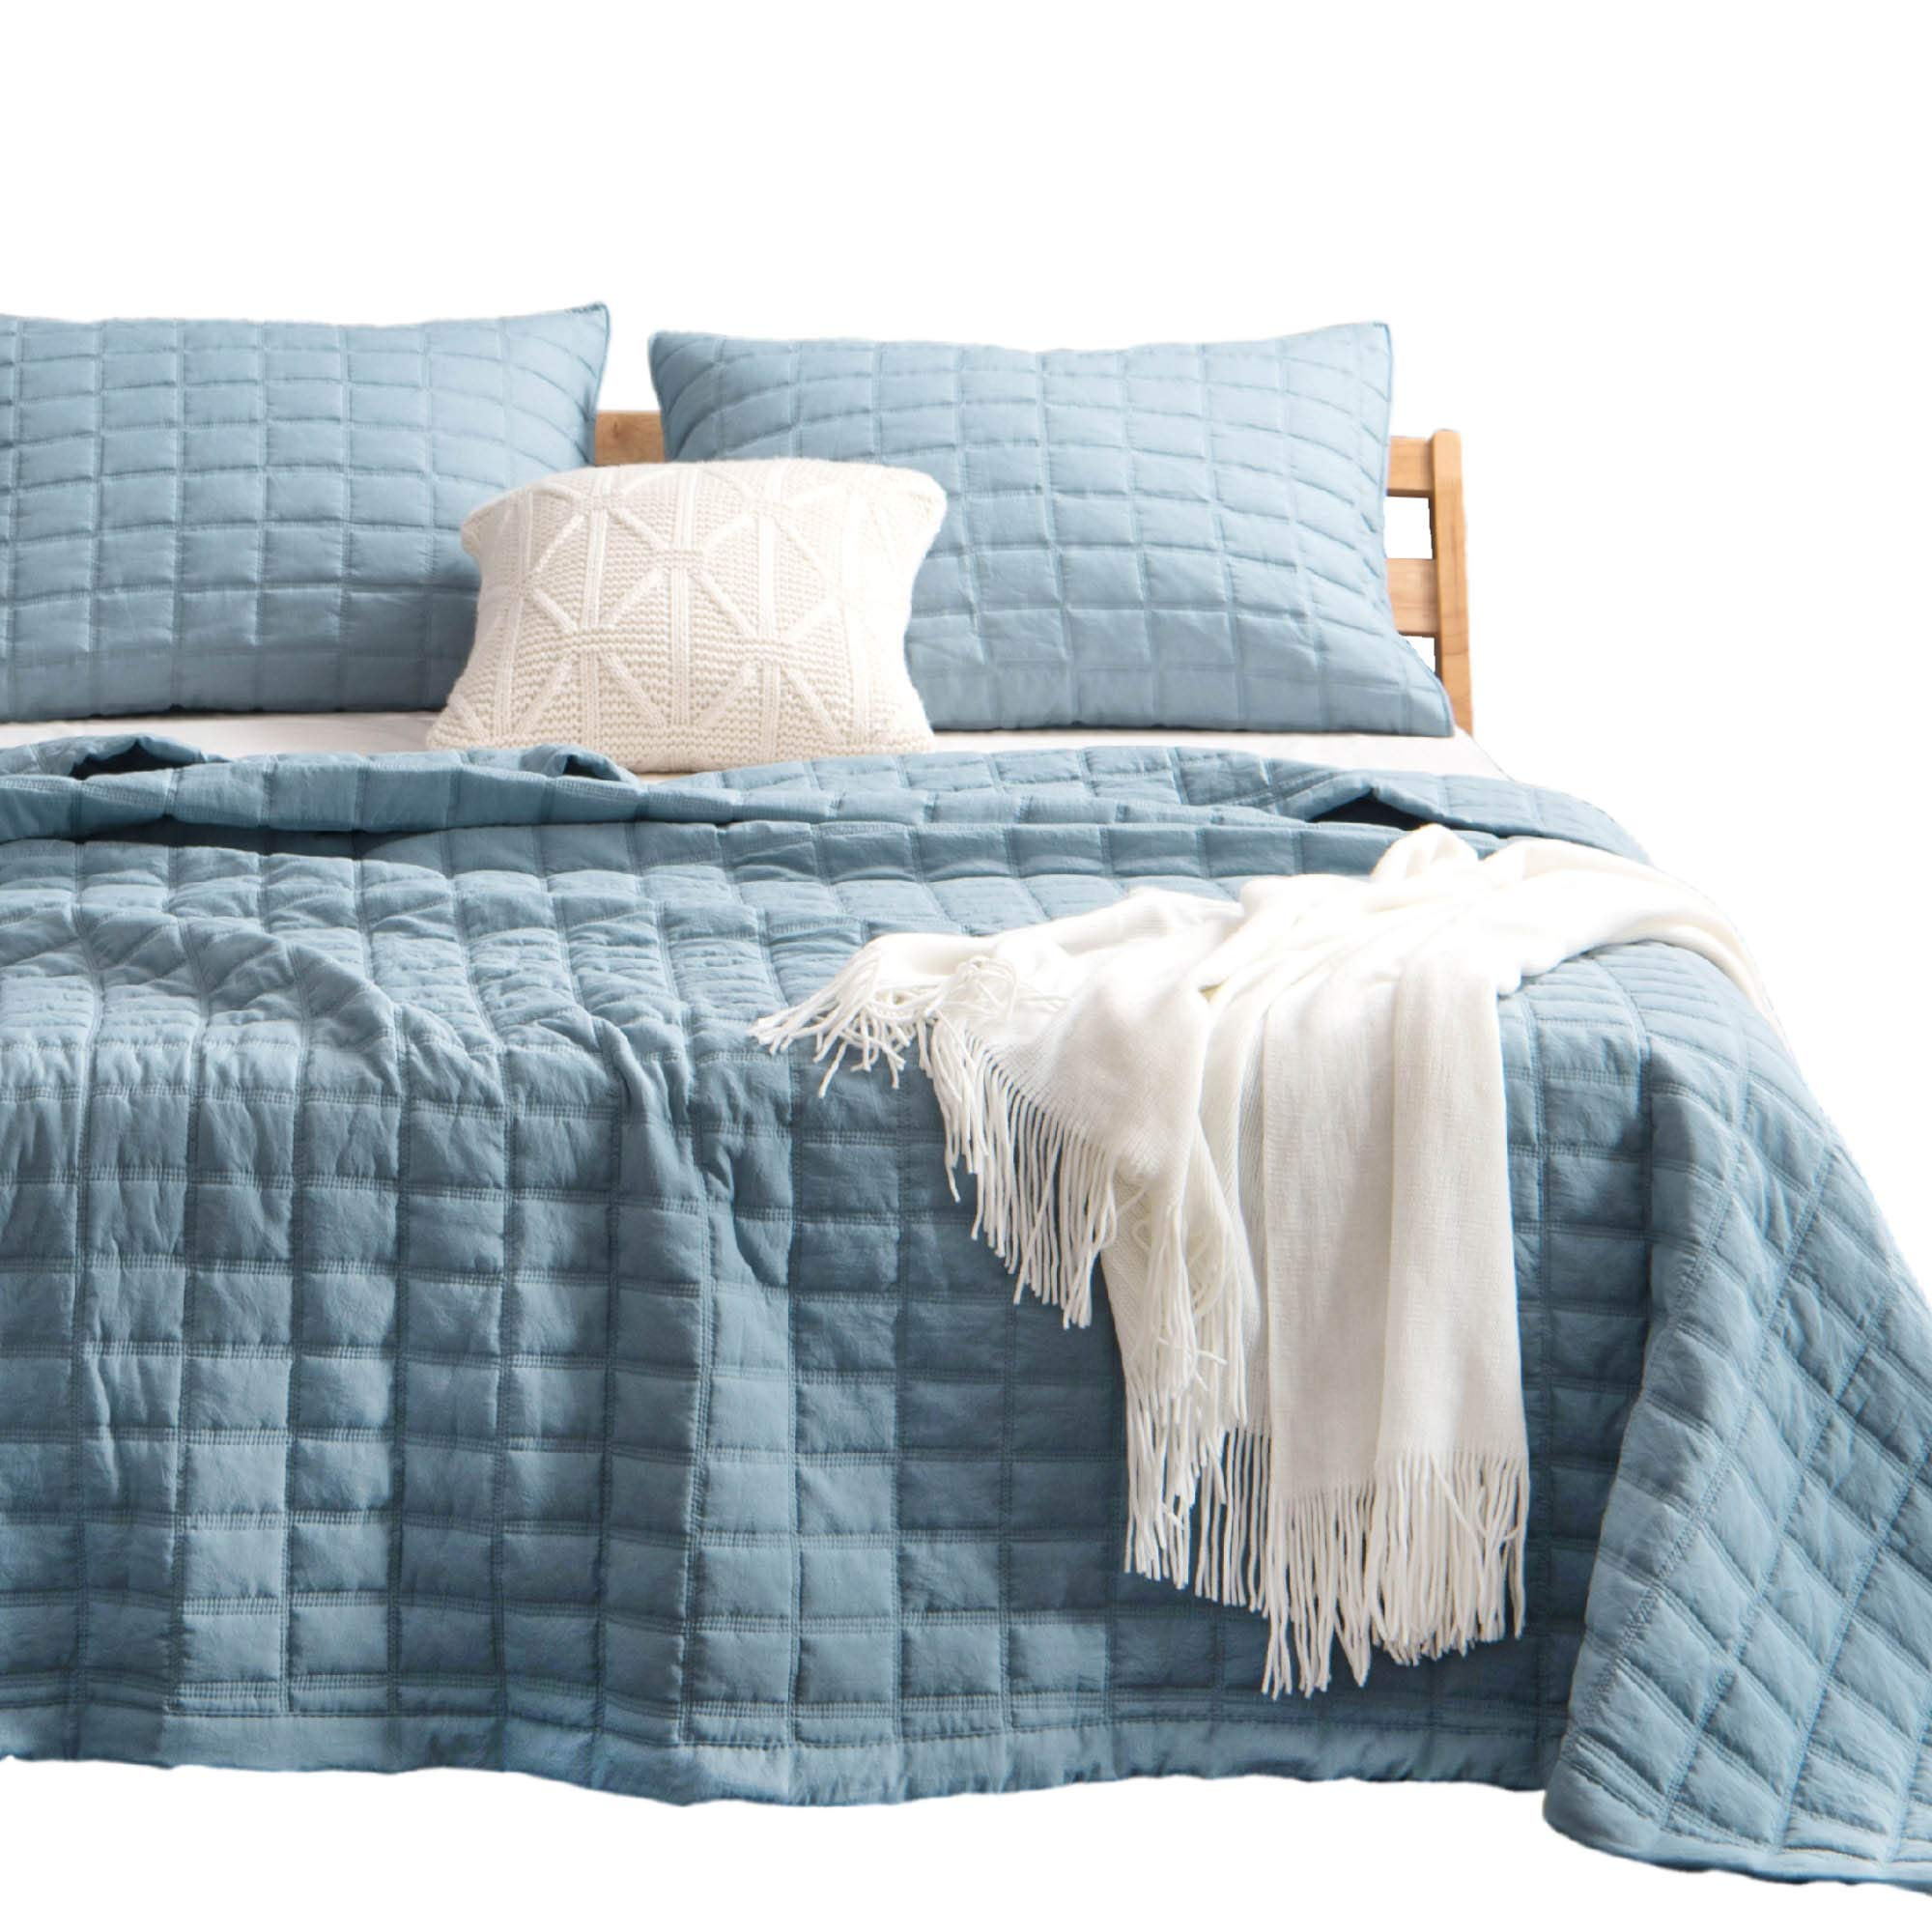 Kasentex Quilt-Bedding-Coverlet-Blanket Set, Machine Washable, Ultra Soft, Lightweight, Stone-Washed, Detailed Stitching - Hypoallergenic - Solid Color, King + 2 Shams, Grey Blue